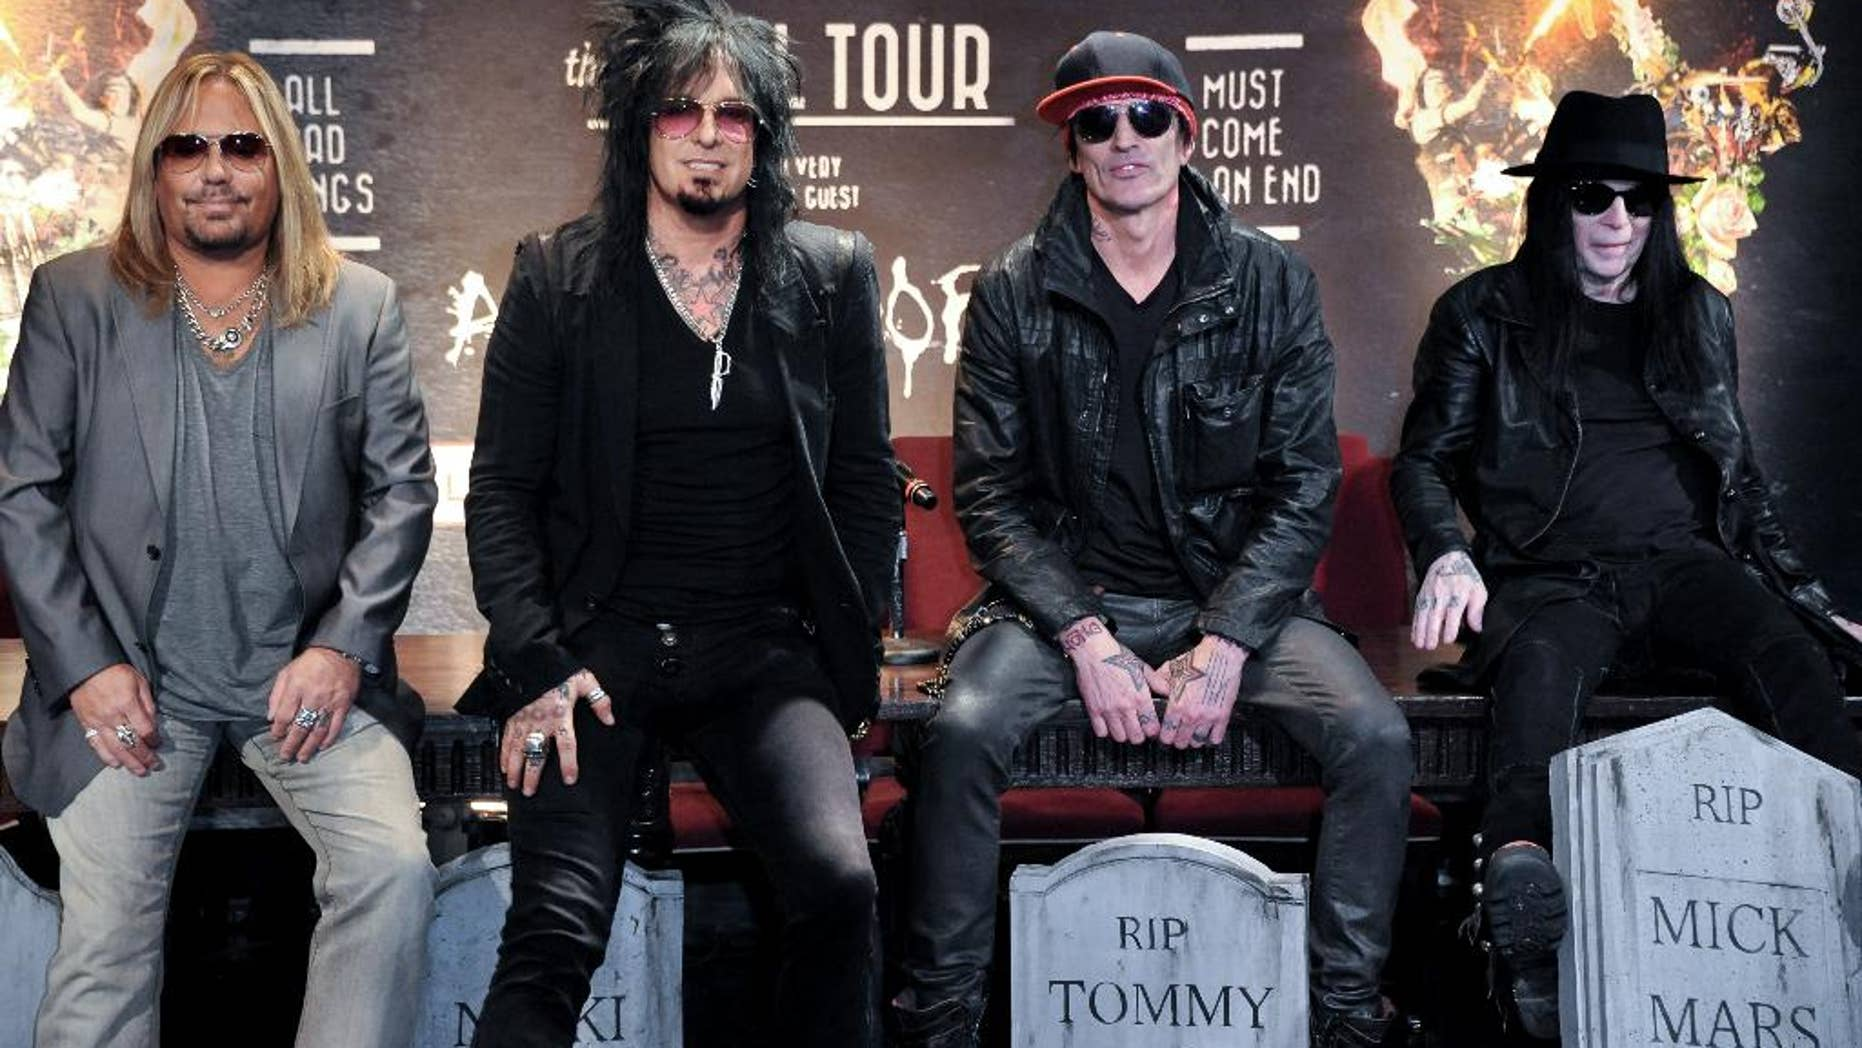 """FILE - This Jan. 28, 2014 file photo shows, from left, Vince Neil, Nikki Sixx, Tommy Lee, and Mick Mars of Motley Crue at a press conference in Los Angeles. Country artists including Rascal Flatts, Florida Georgia Line and Brantley Gilbert perform on the 15-song album """"Nashville Outlaws: A Tribute to Motley Crue,"""" released Tuesday, Aug. 19. (Photo by Richard Shotwell/Invision/AP, File)"""